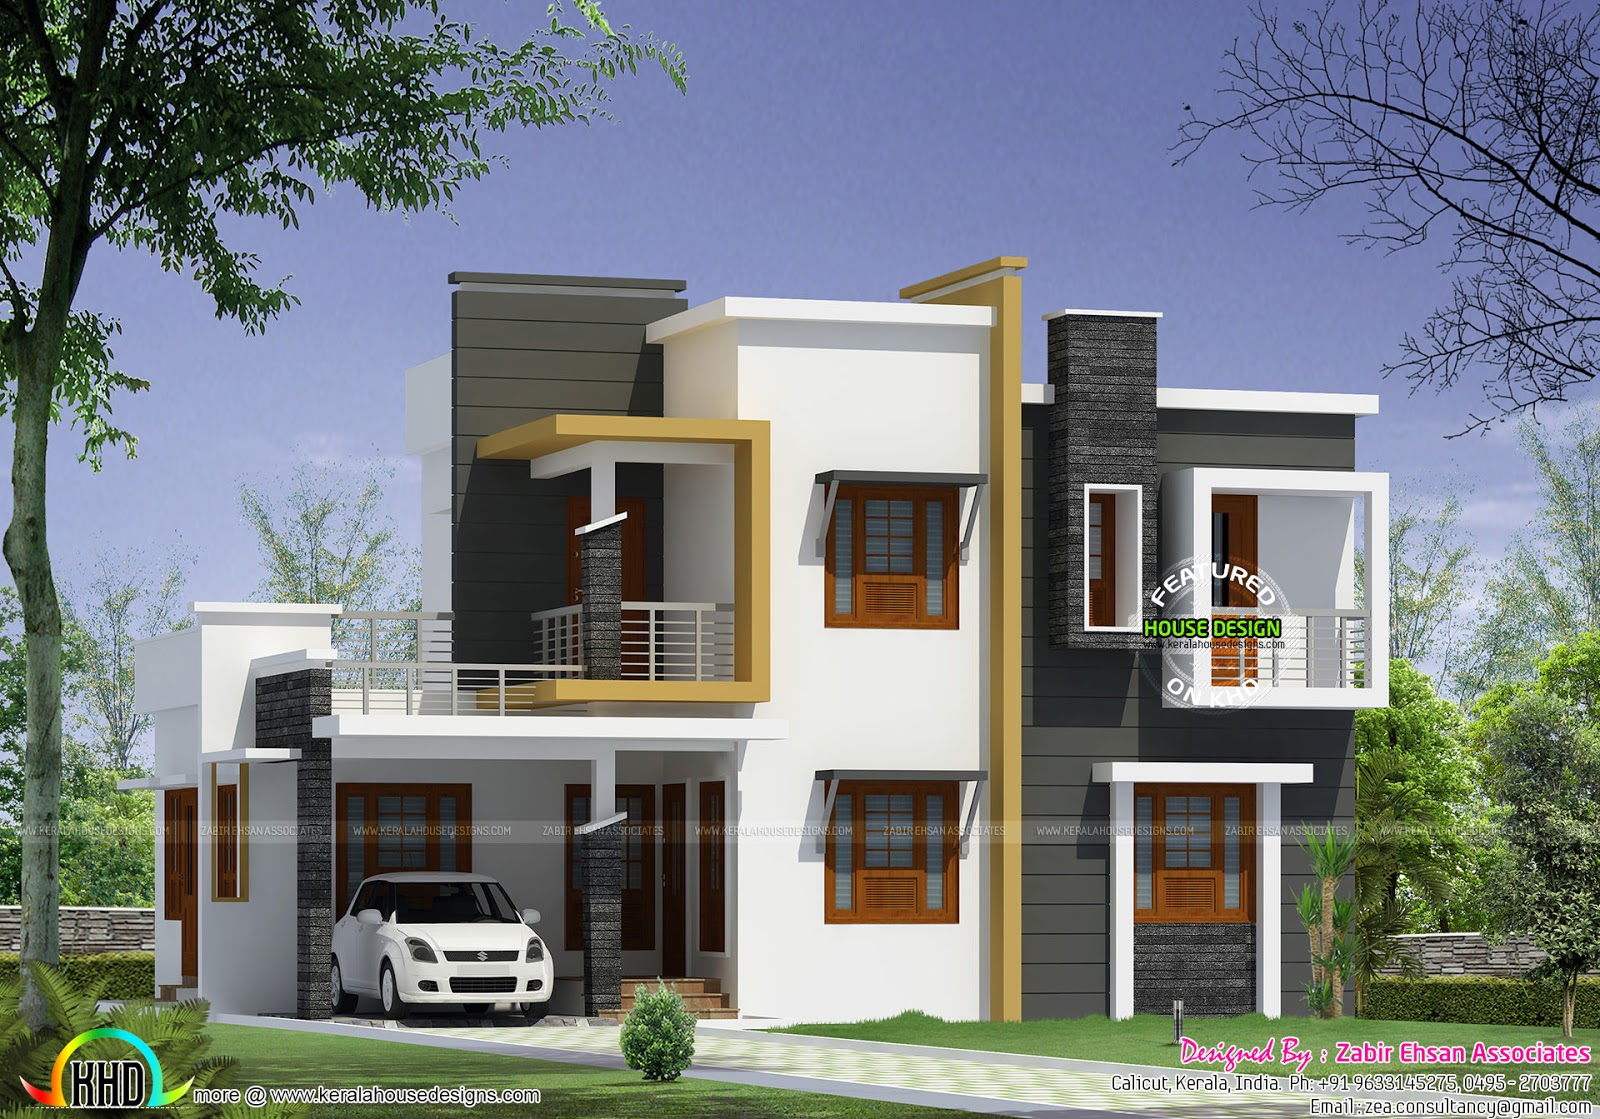 Box type modern house plan kerala home design and floor for Design home modern